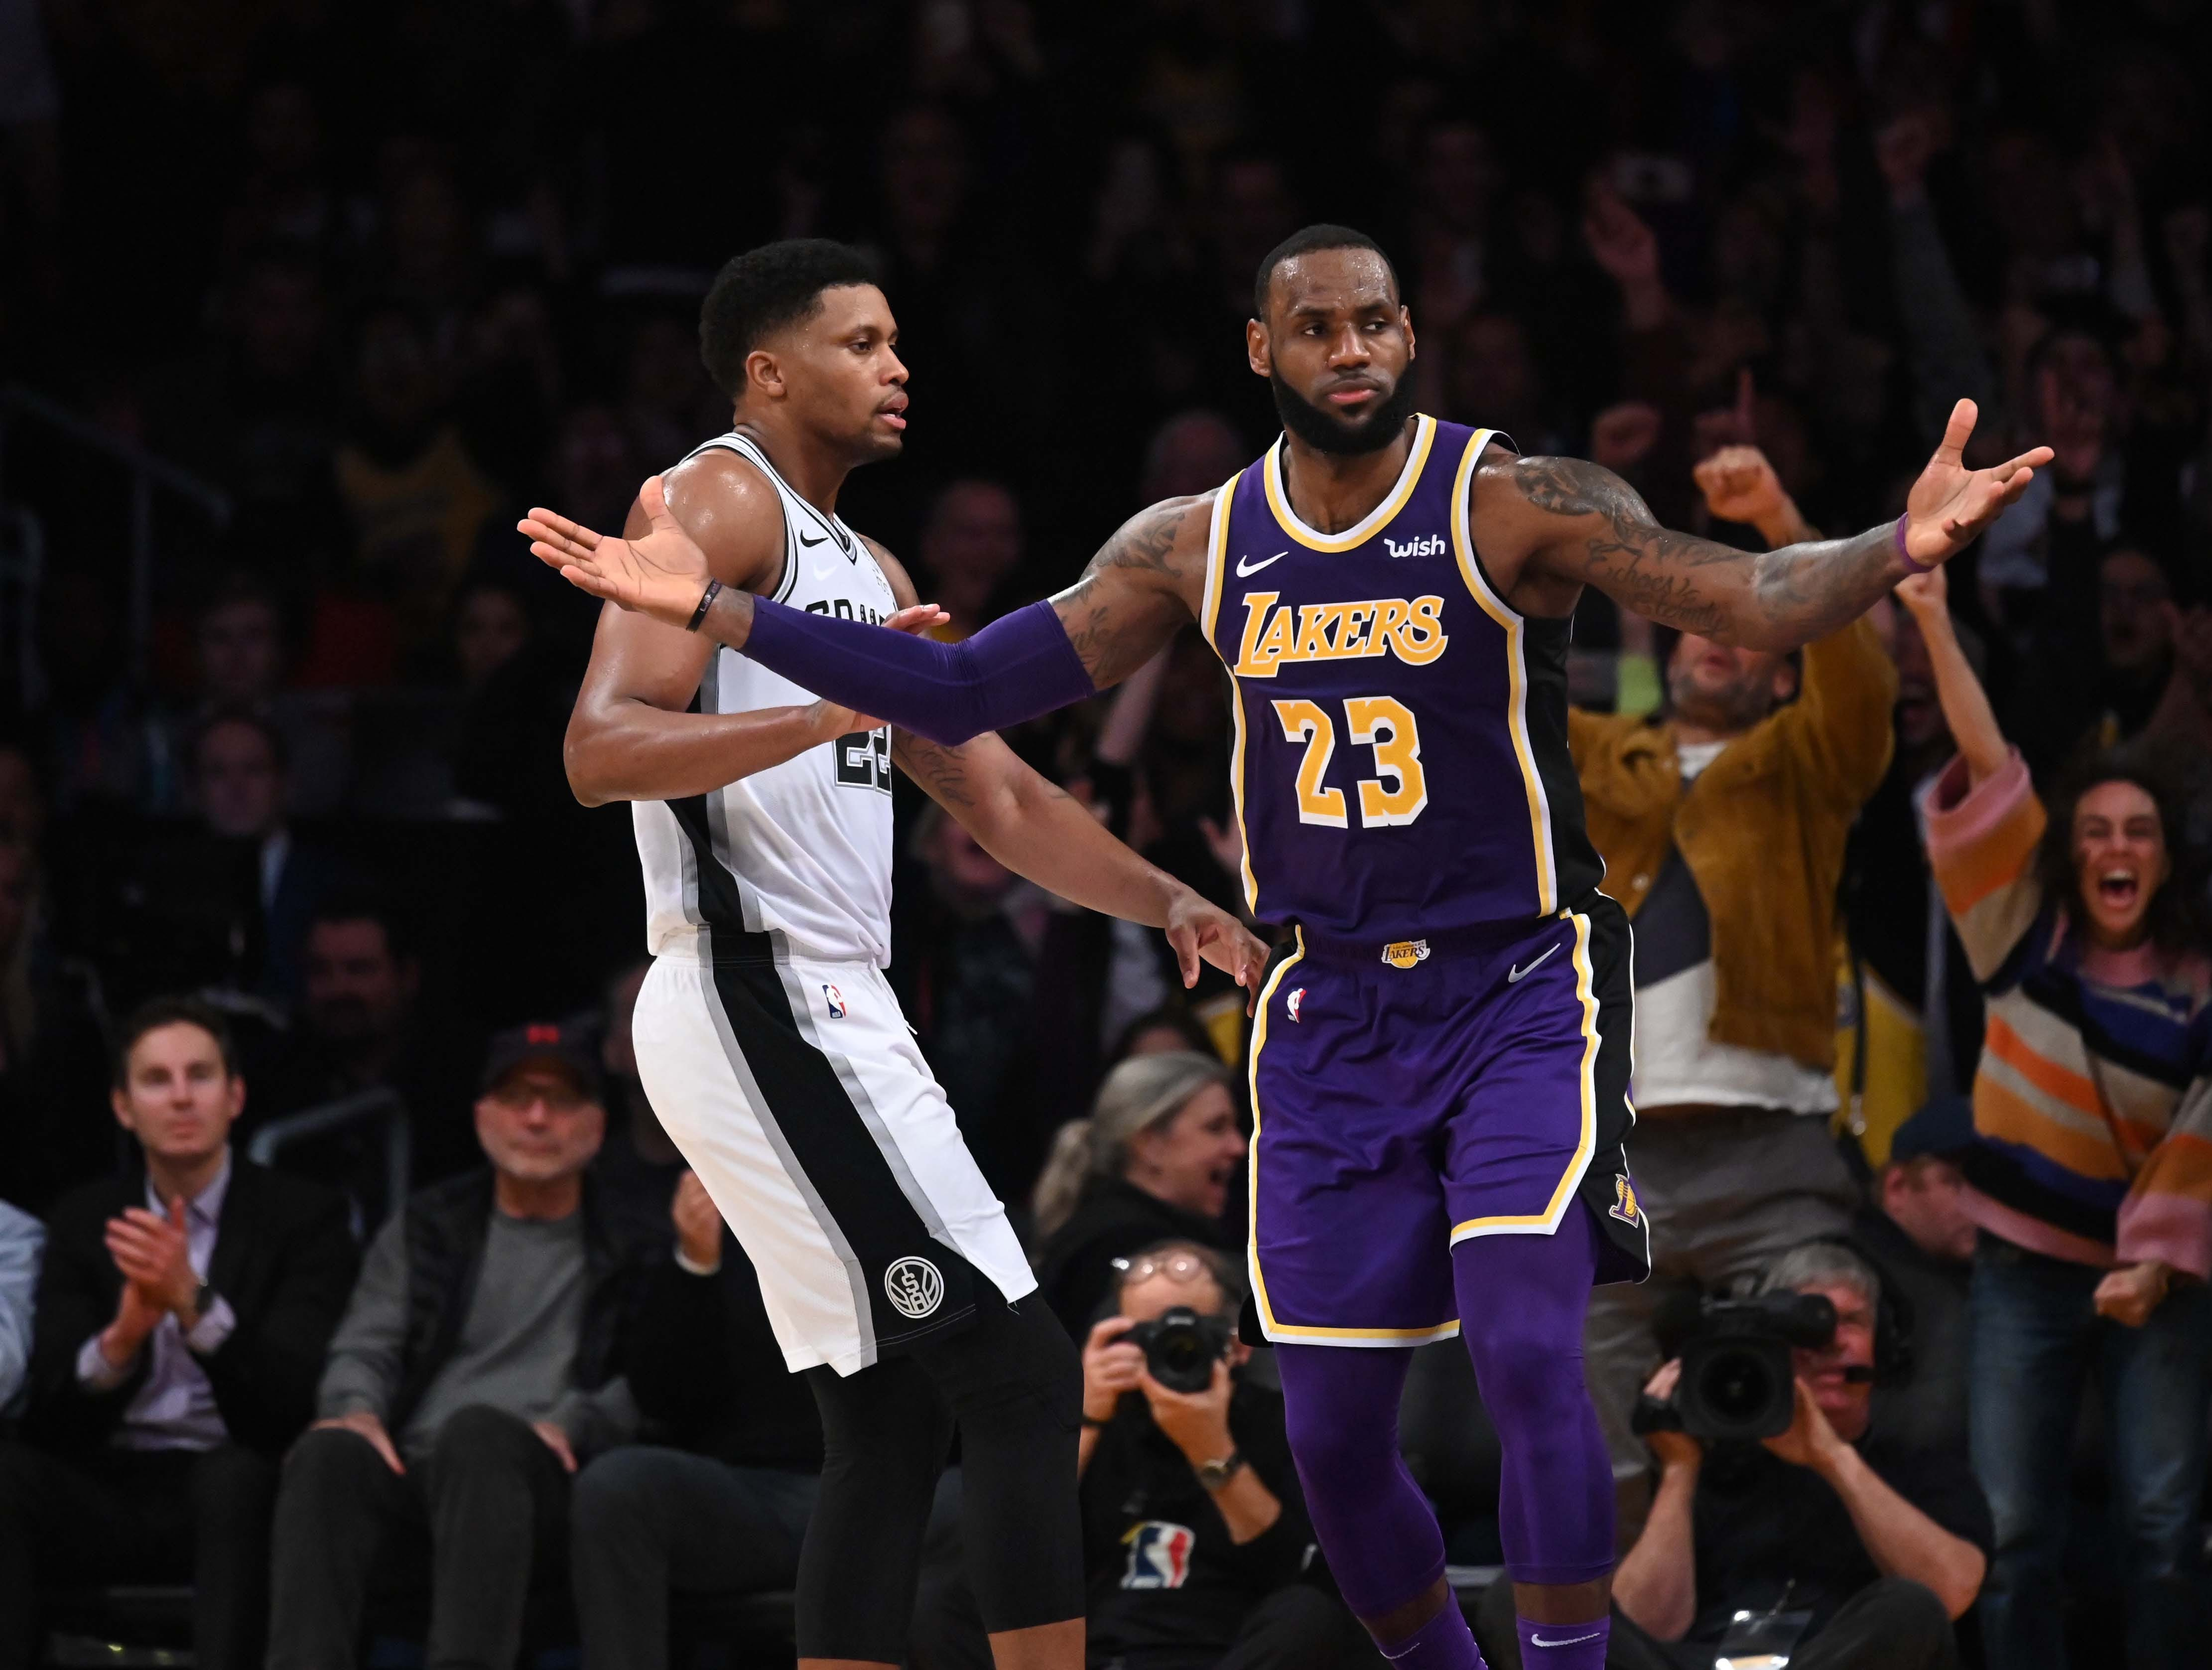 Dec. 5: Los Angeles Lakers forward LeBron James celebrates in the fourth quarter against the San Antonio Spurs at Staples Center.